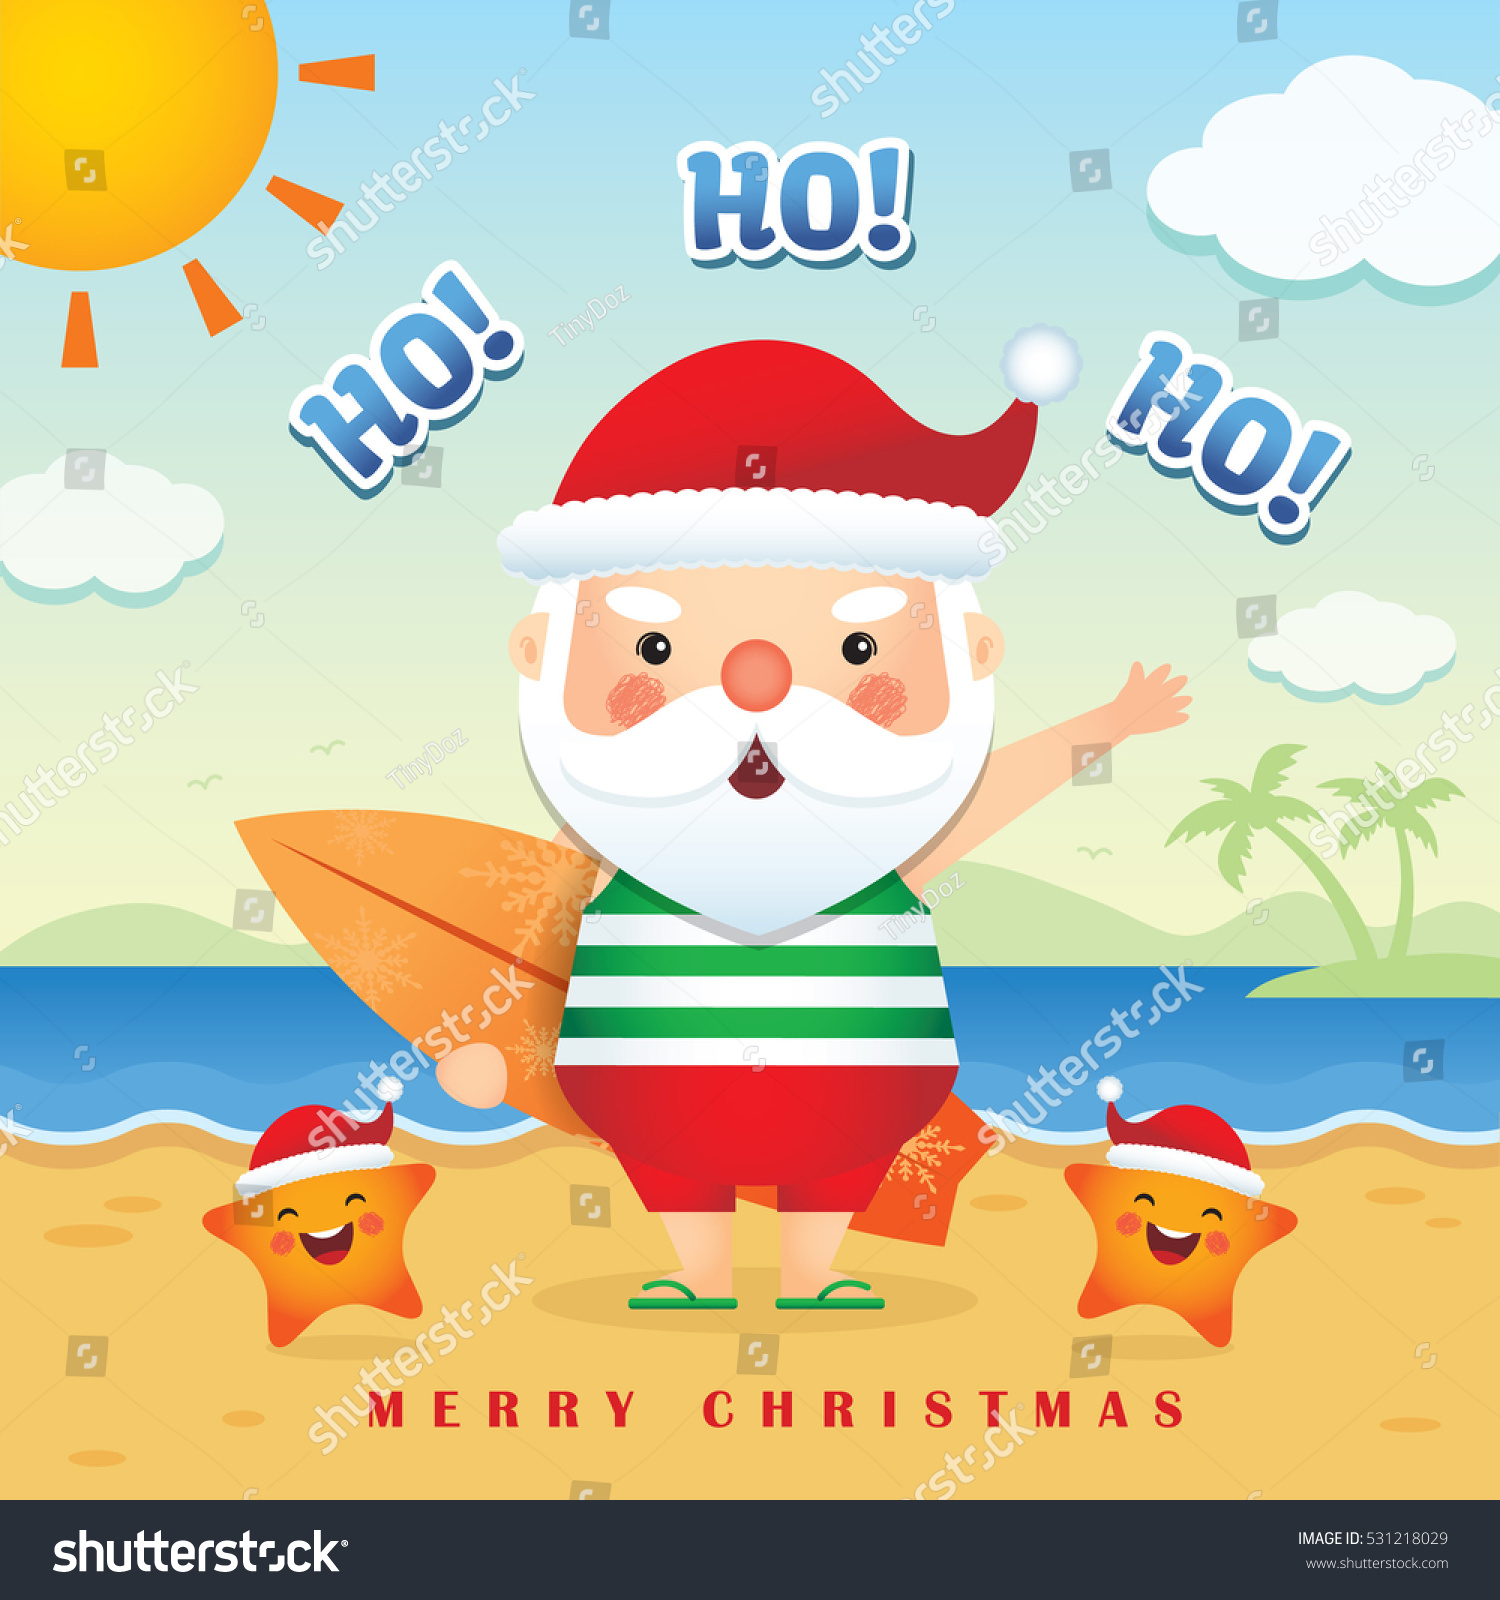 Merry Christmas Greetings Cute Cartoon Santa Stock Vector Royalty